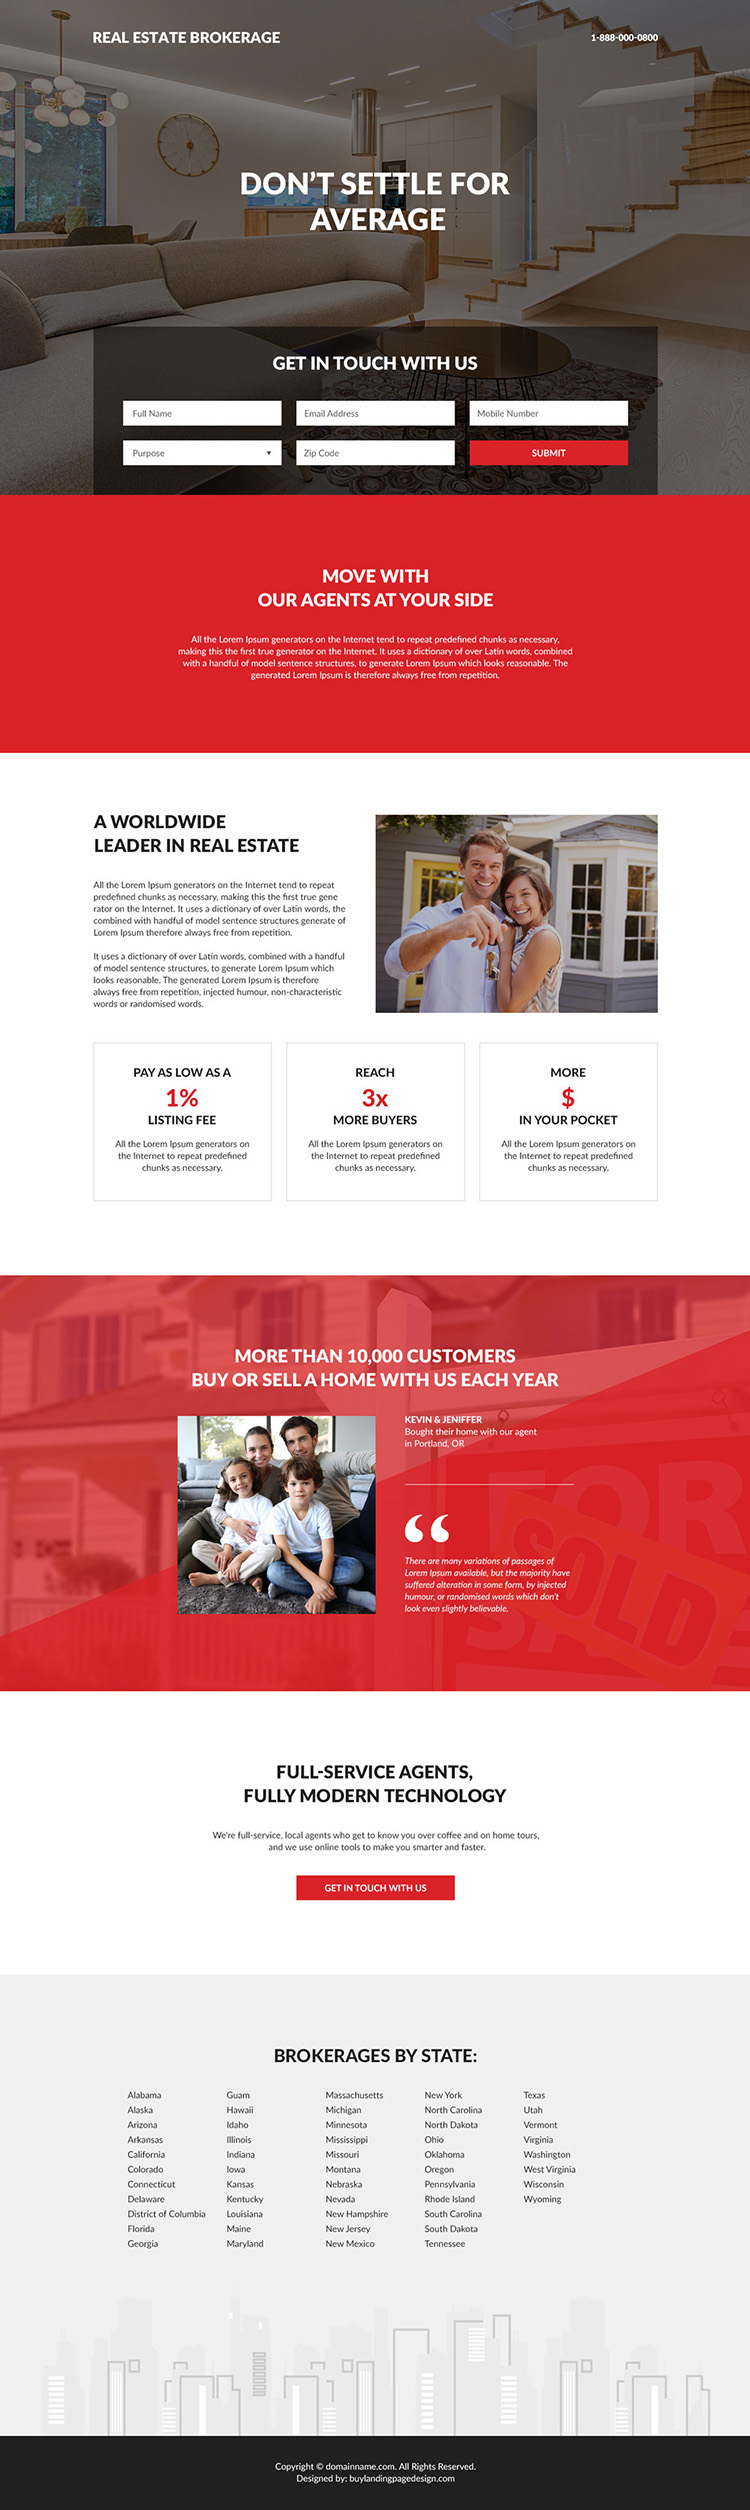 real estate brokerage lead capture responsive landing page